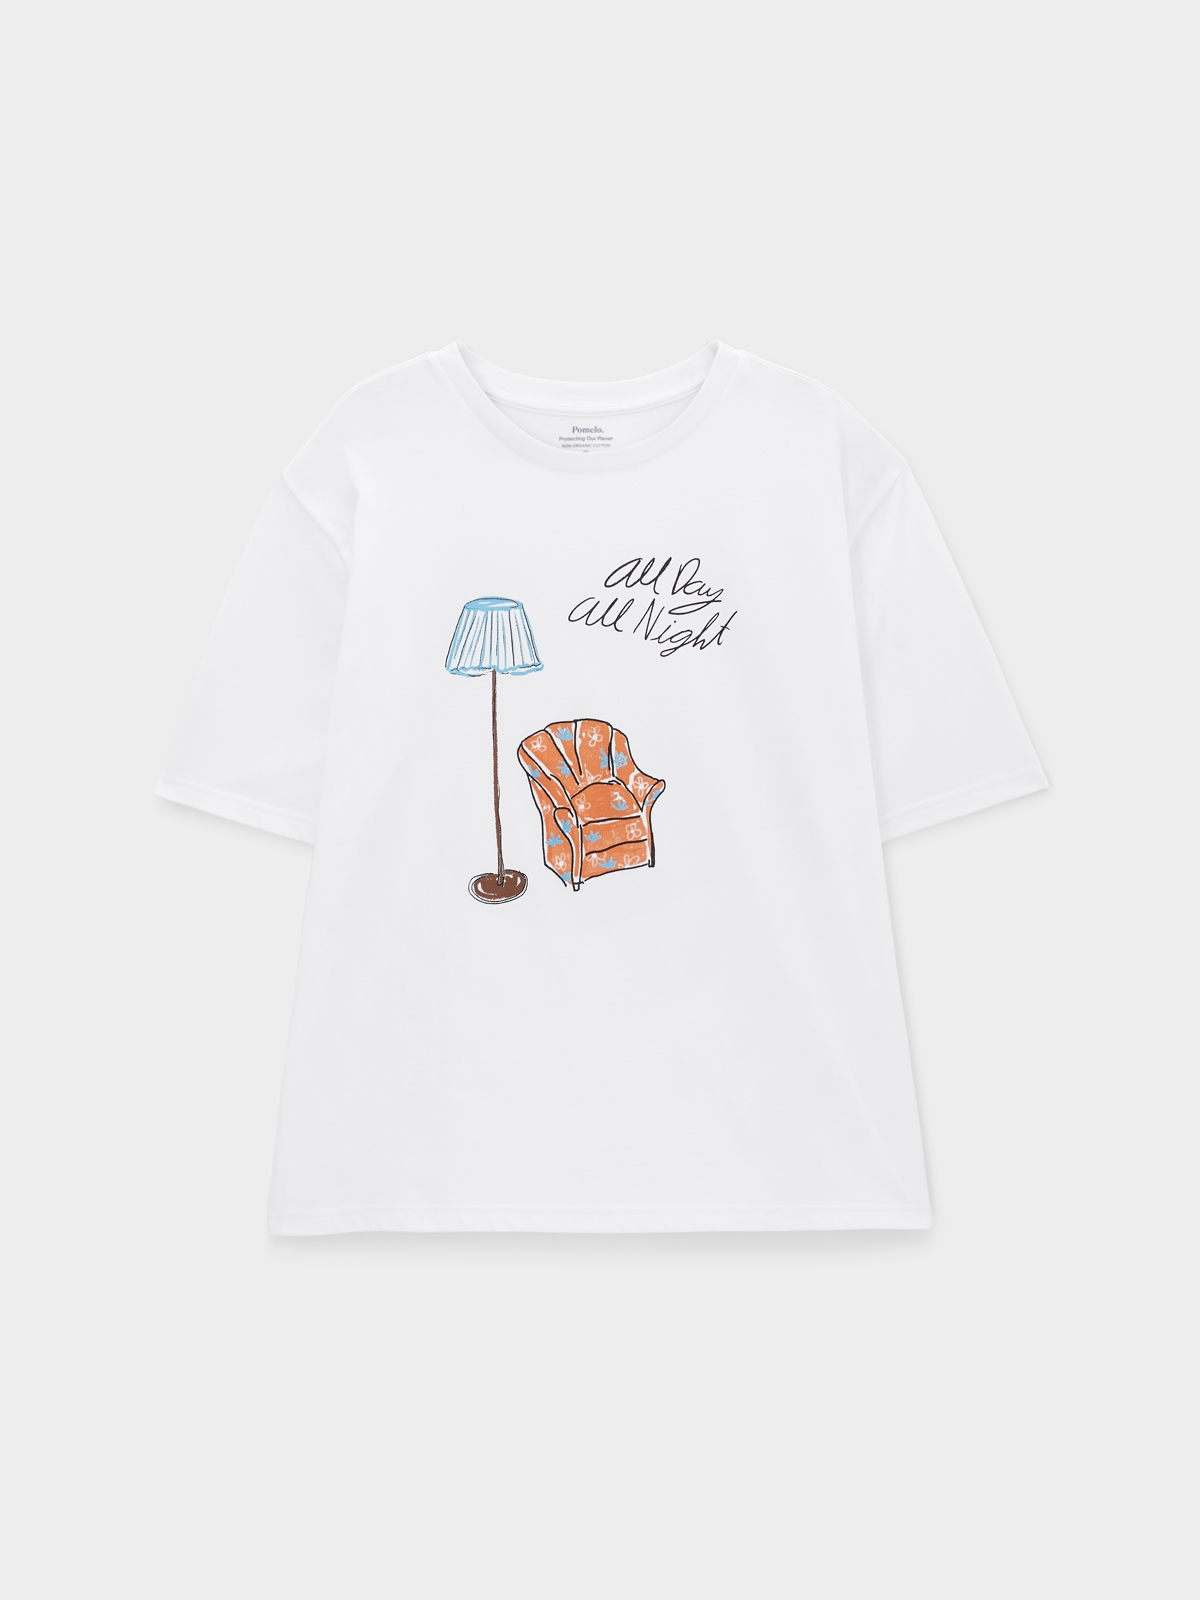 All Day All Night Organic Cotton Graphic Tee White